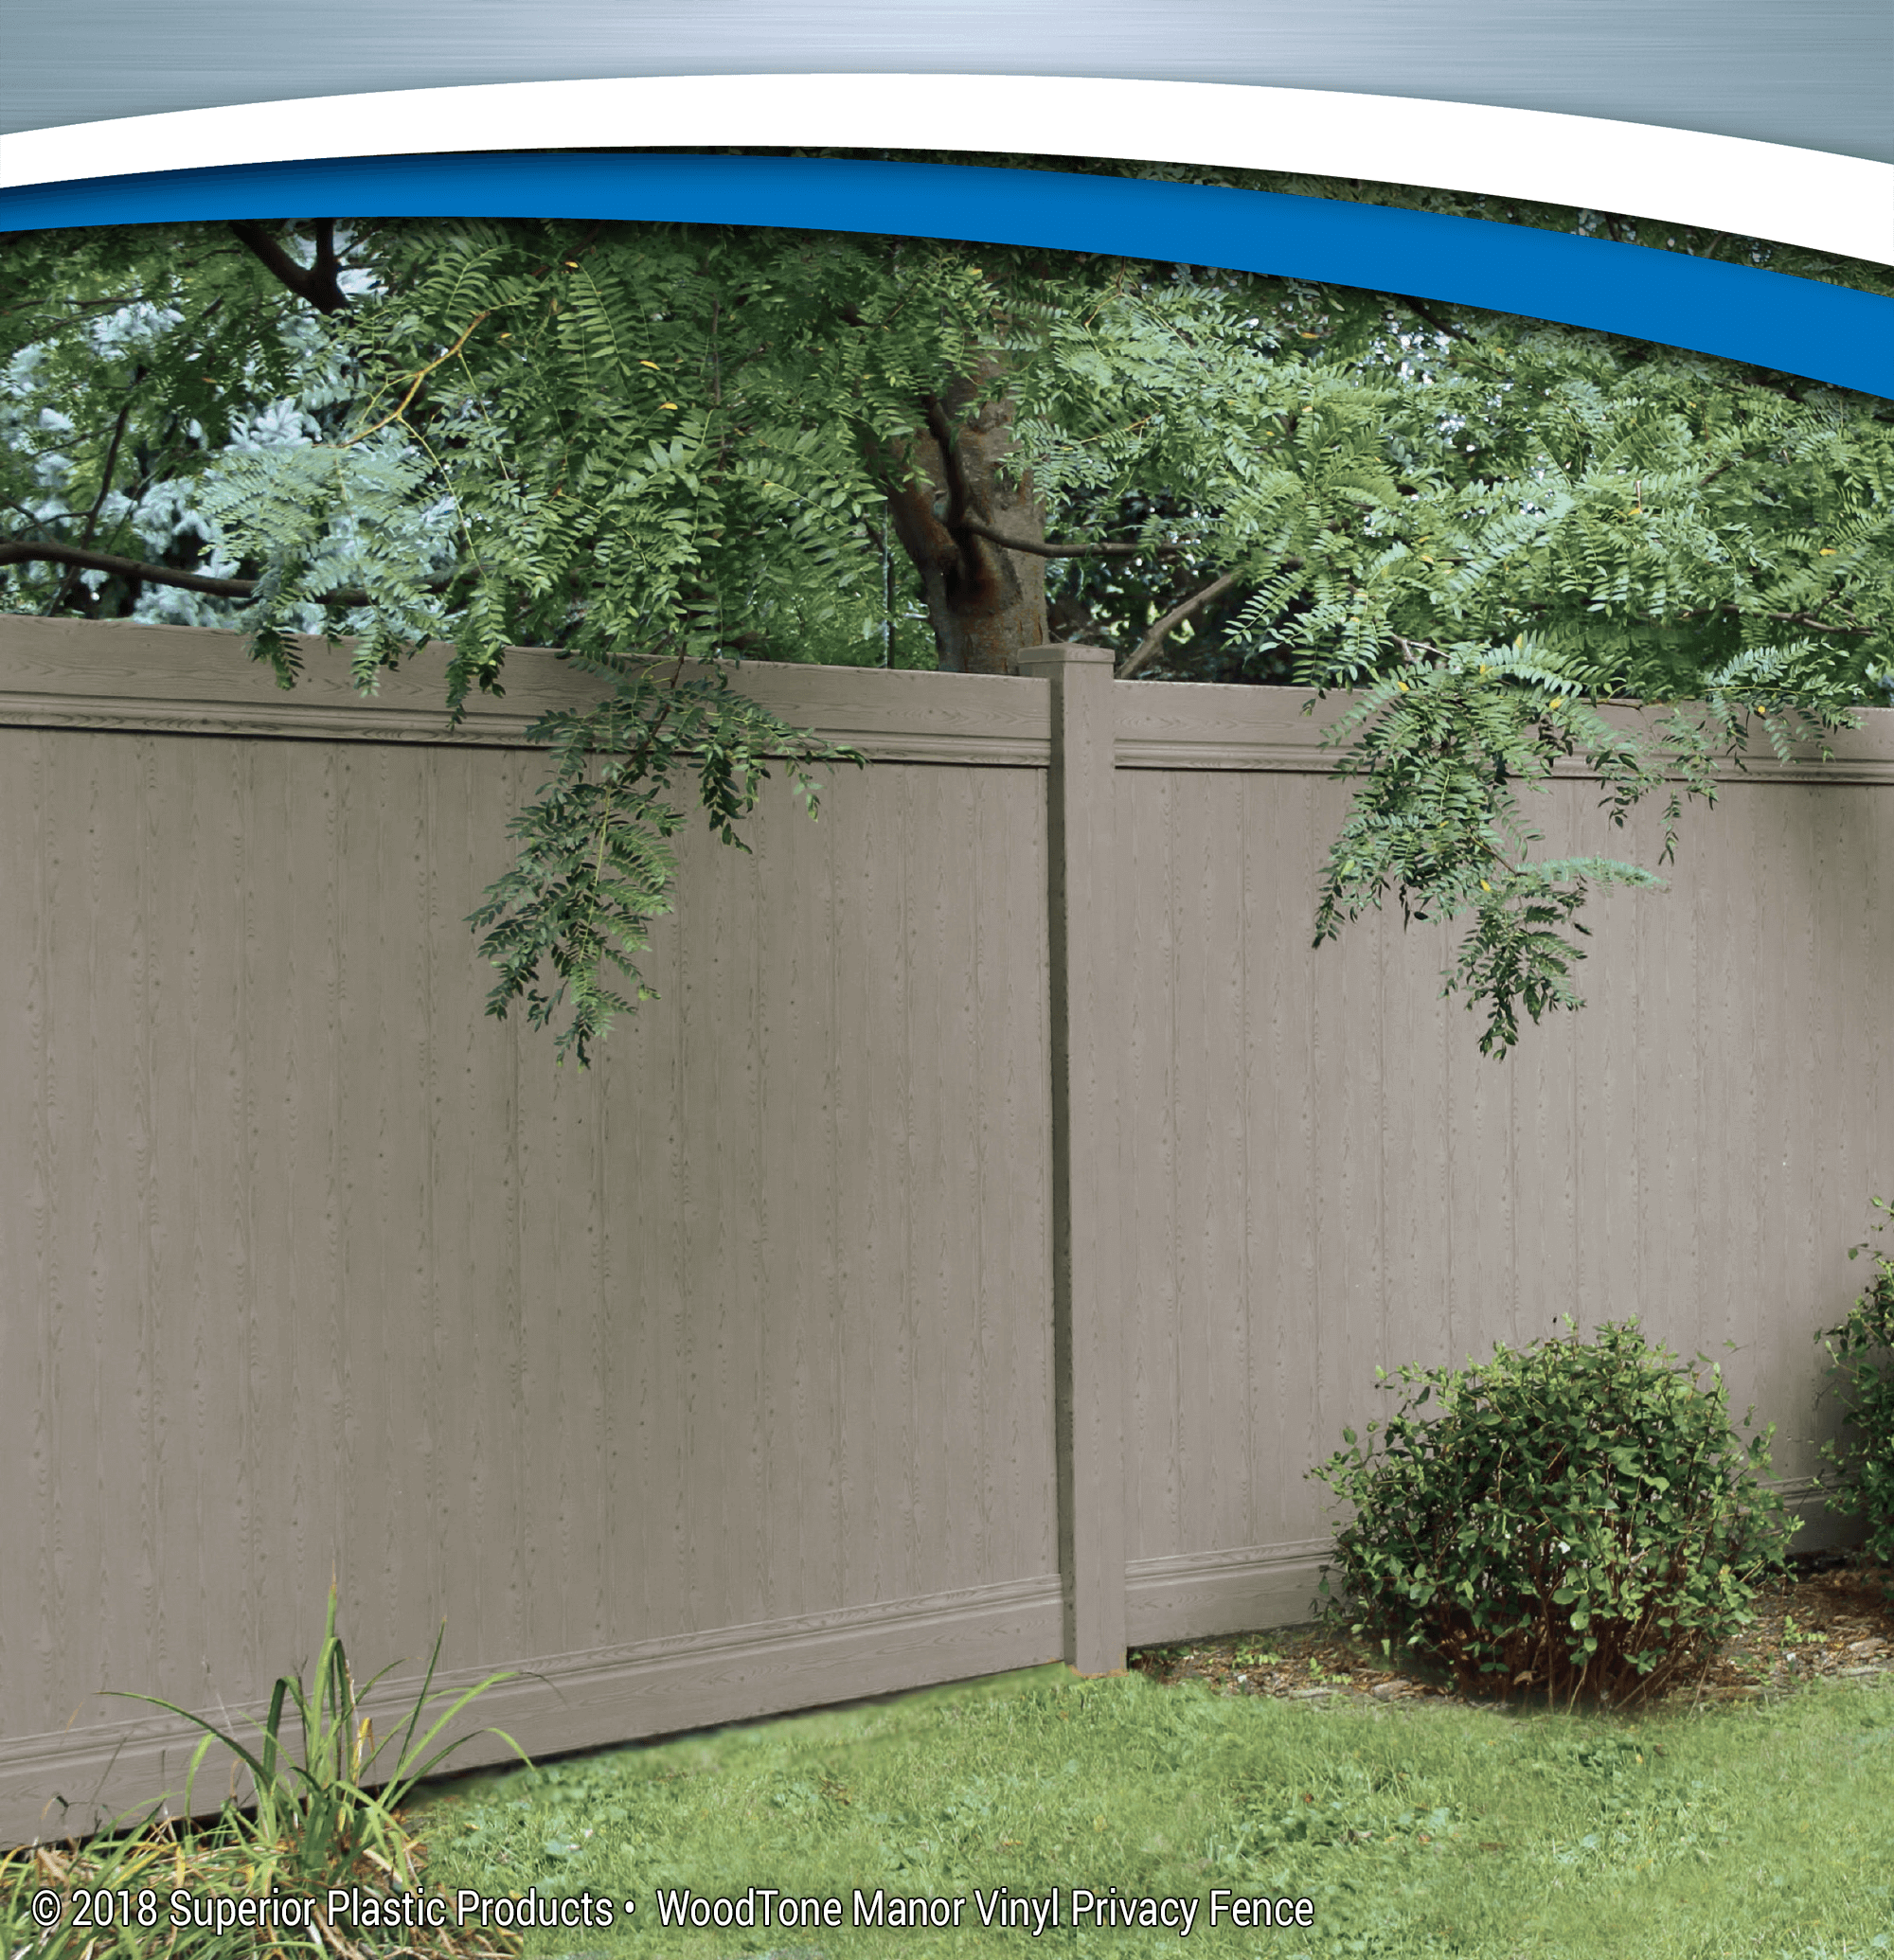 WoodTone Vinyl Fence - Superior Plastic Products Manor Vinyl Privacy Fence - Superior Plastic Products